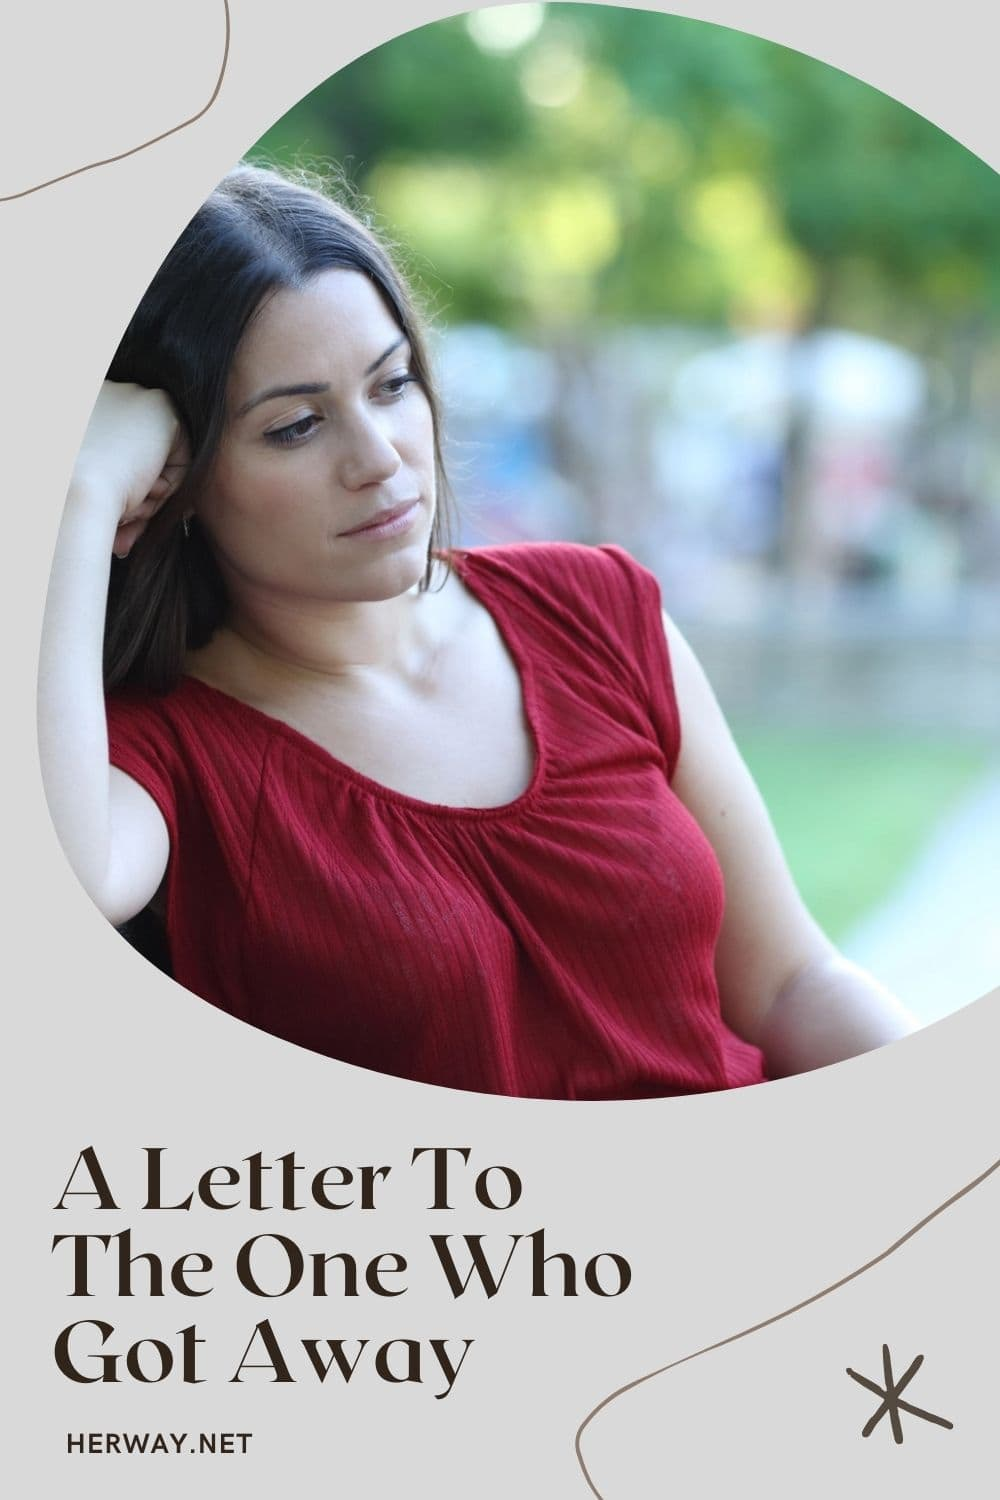 A Letter To The One Who Got Away